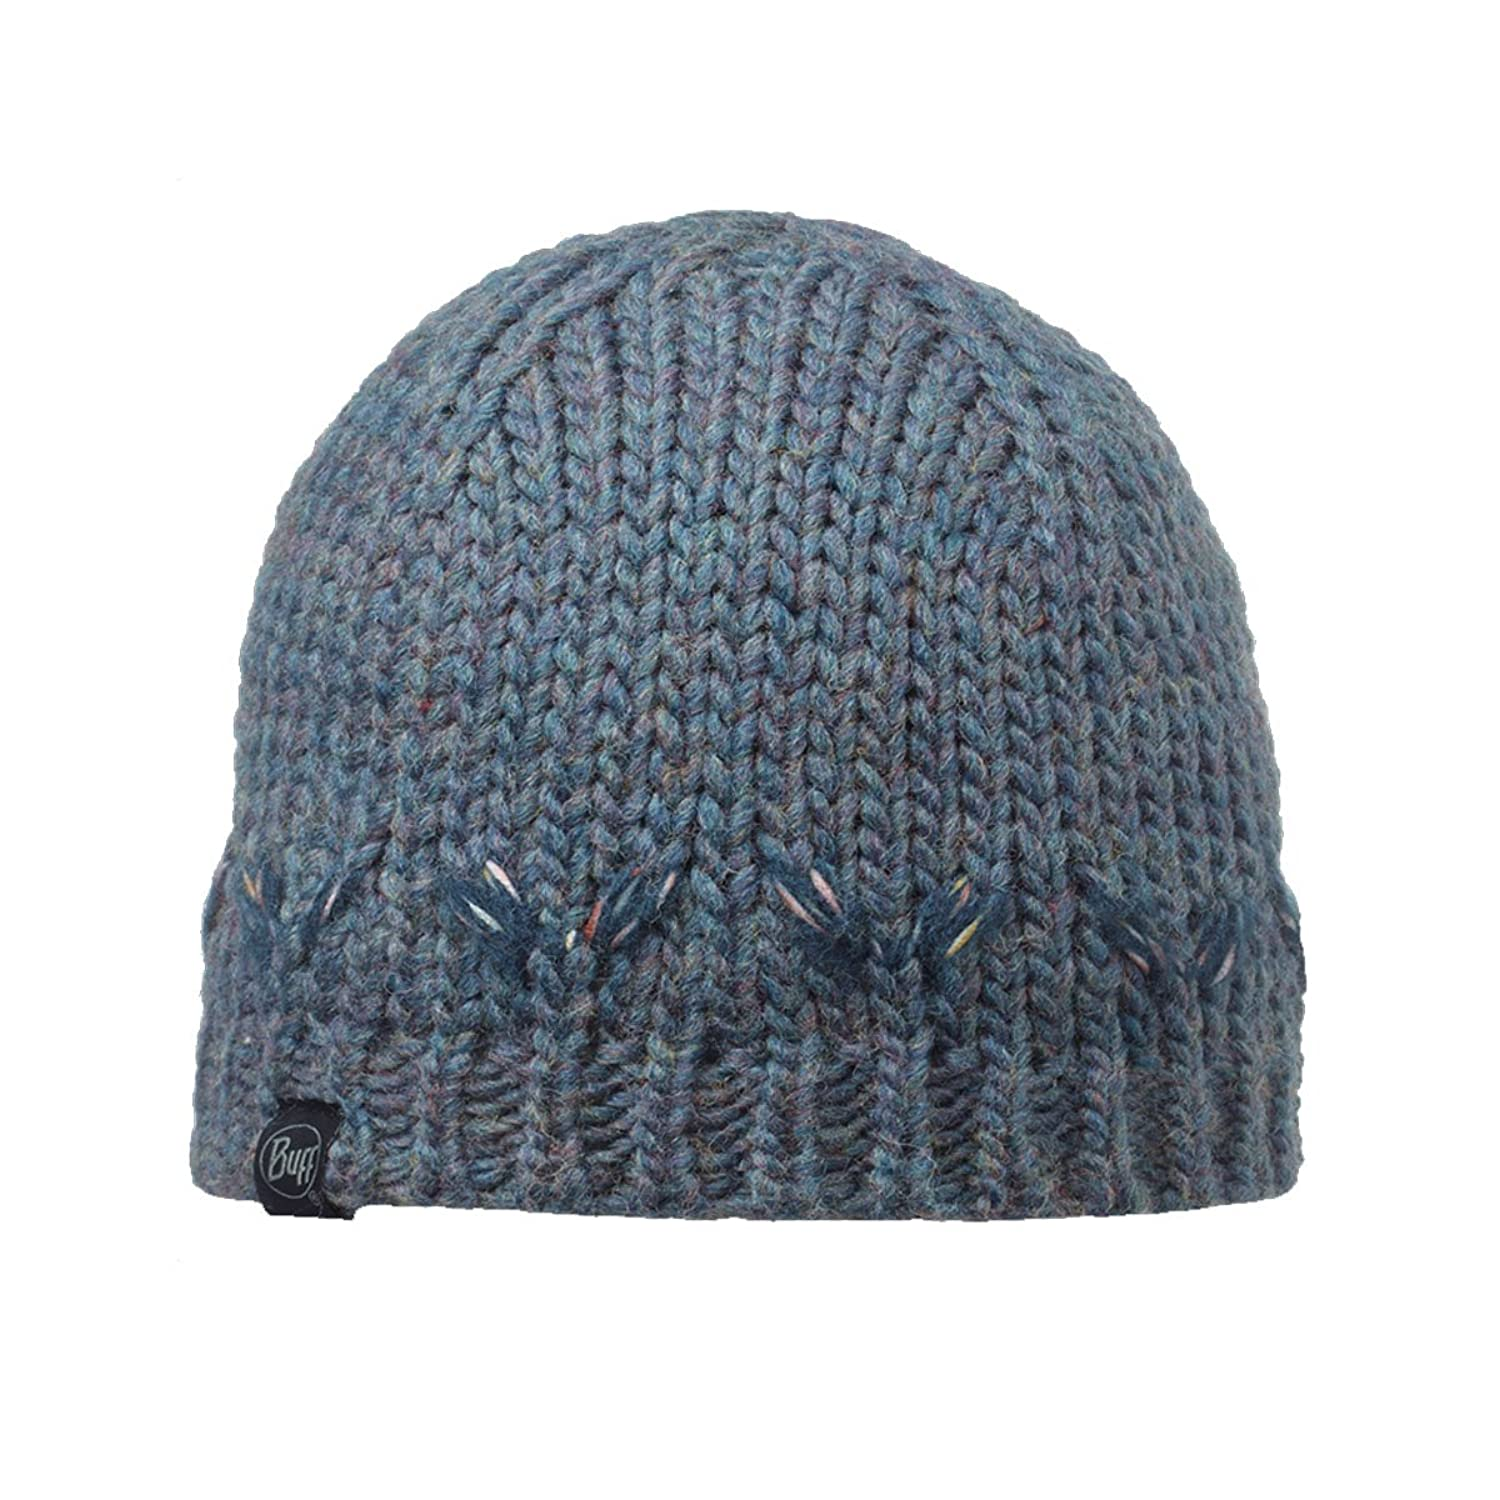 Buff Unisex Outdoor Knitted Hat